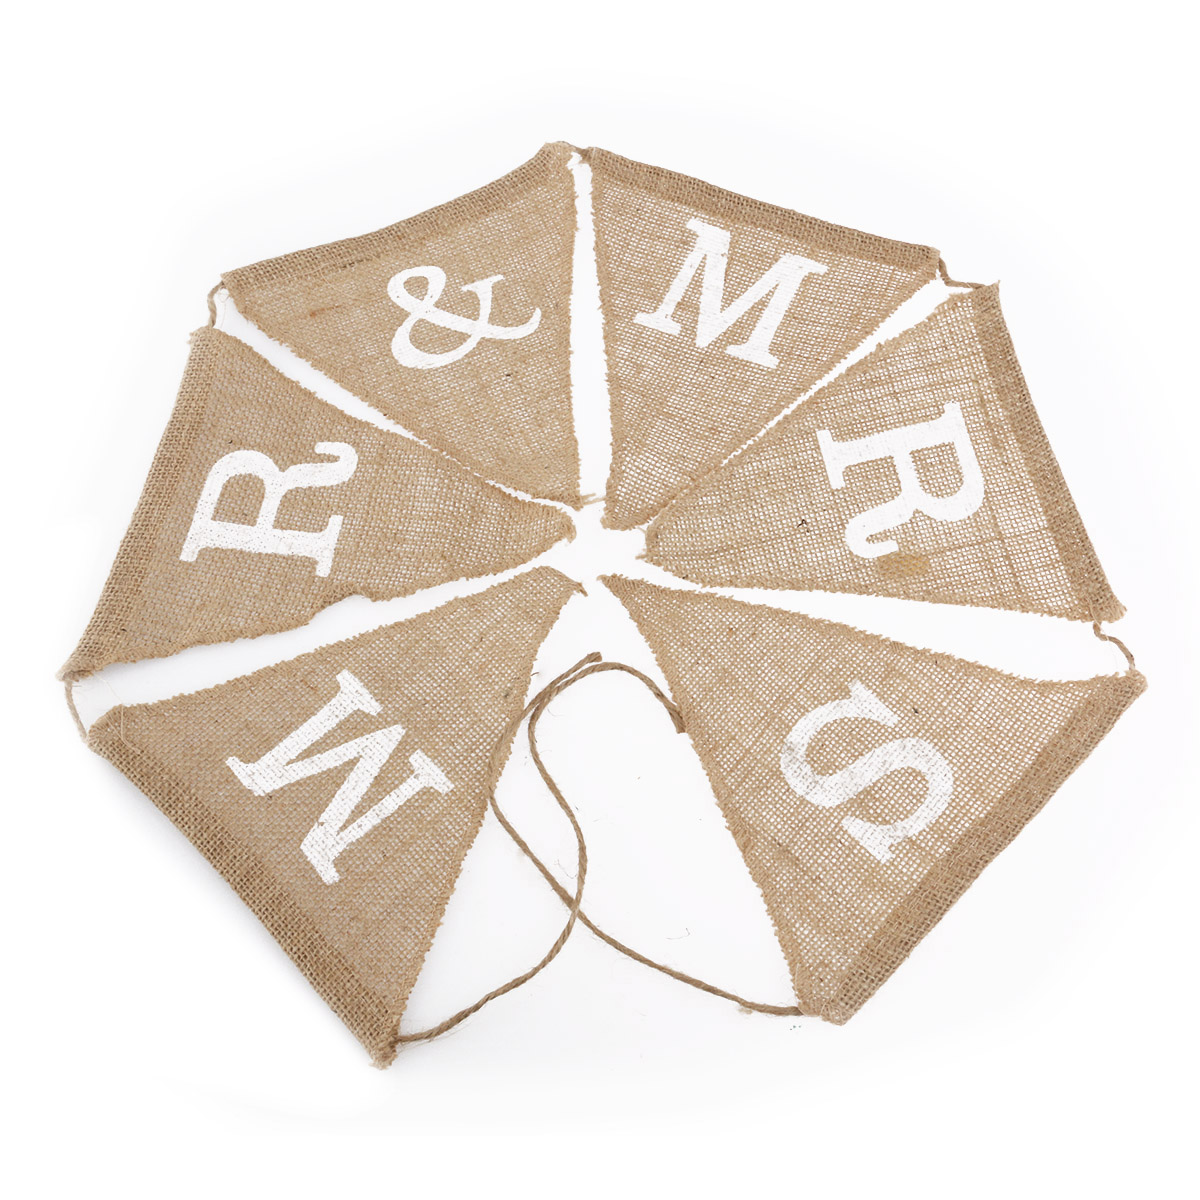 6pcs MR MRS Hessian Burlap Banner Wedding Party Decoration Bunting